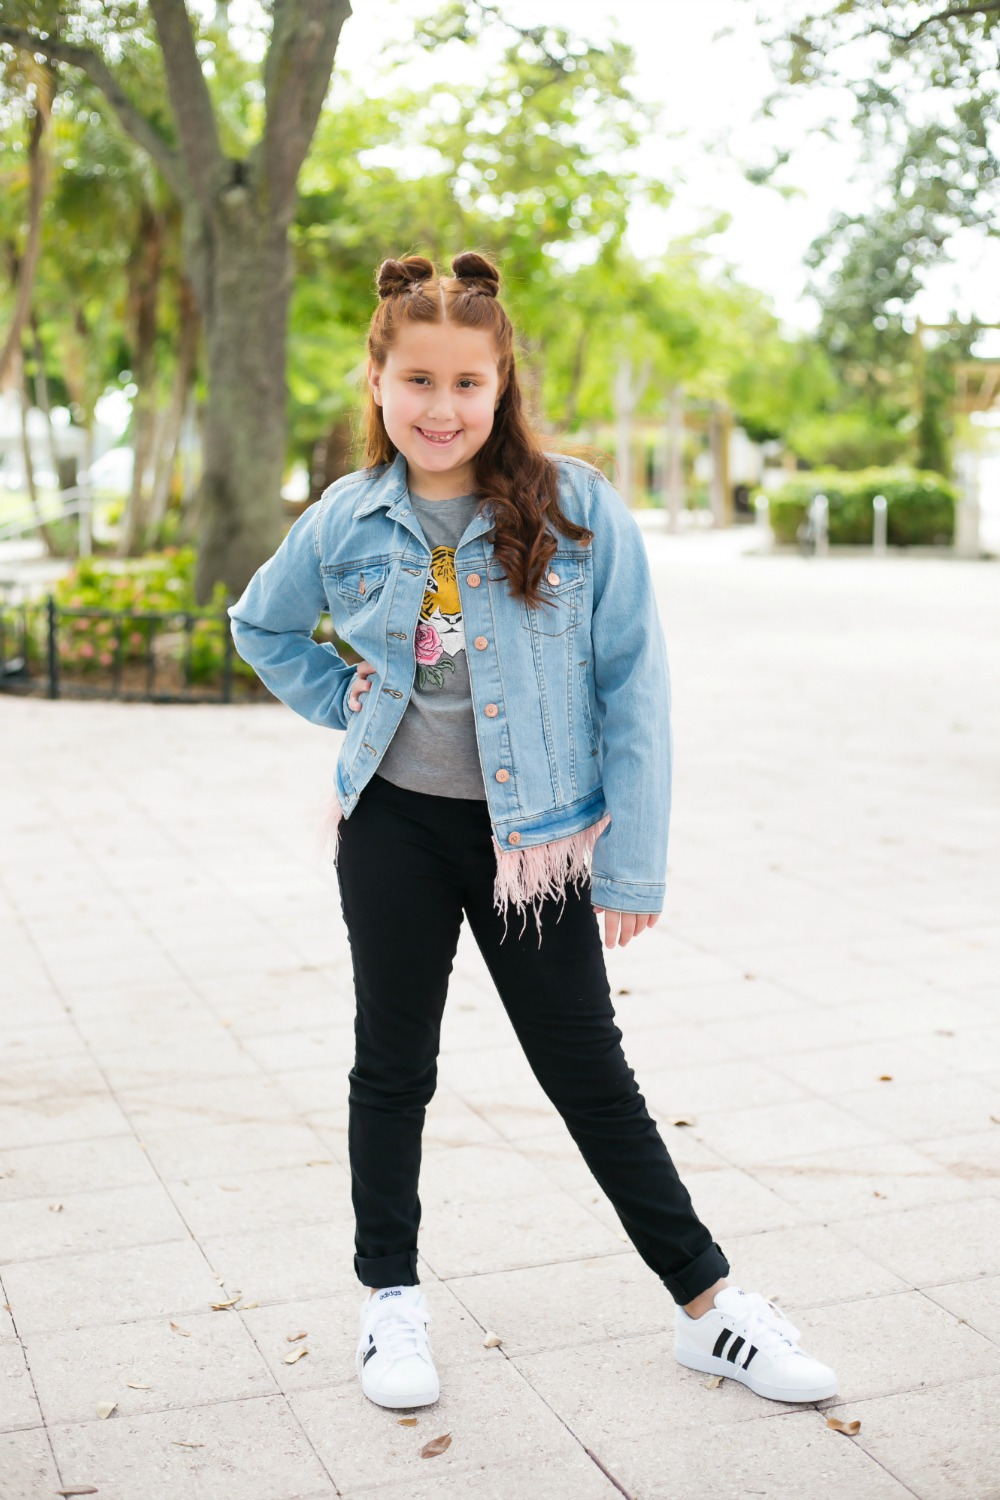 Back to school outfit ideas for your little girl // the modern savvy, a life & style blog - Back to School Style, with JCPenney featured by popular Florida fashion blogger, The Modern Savvy